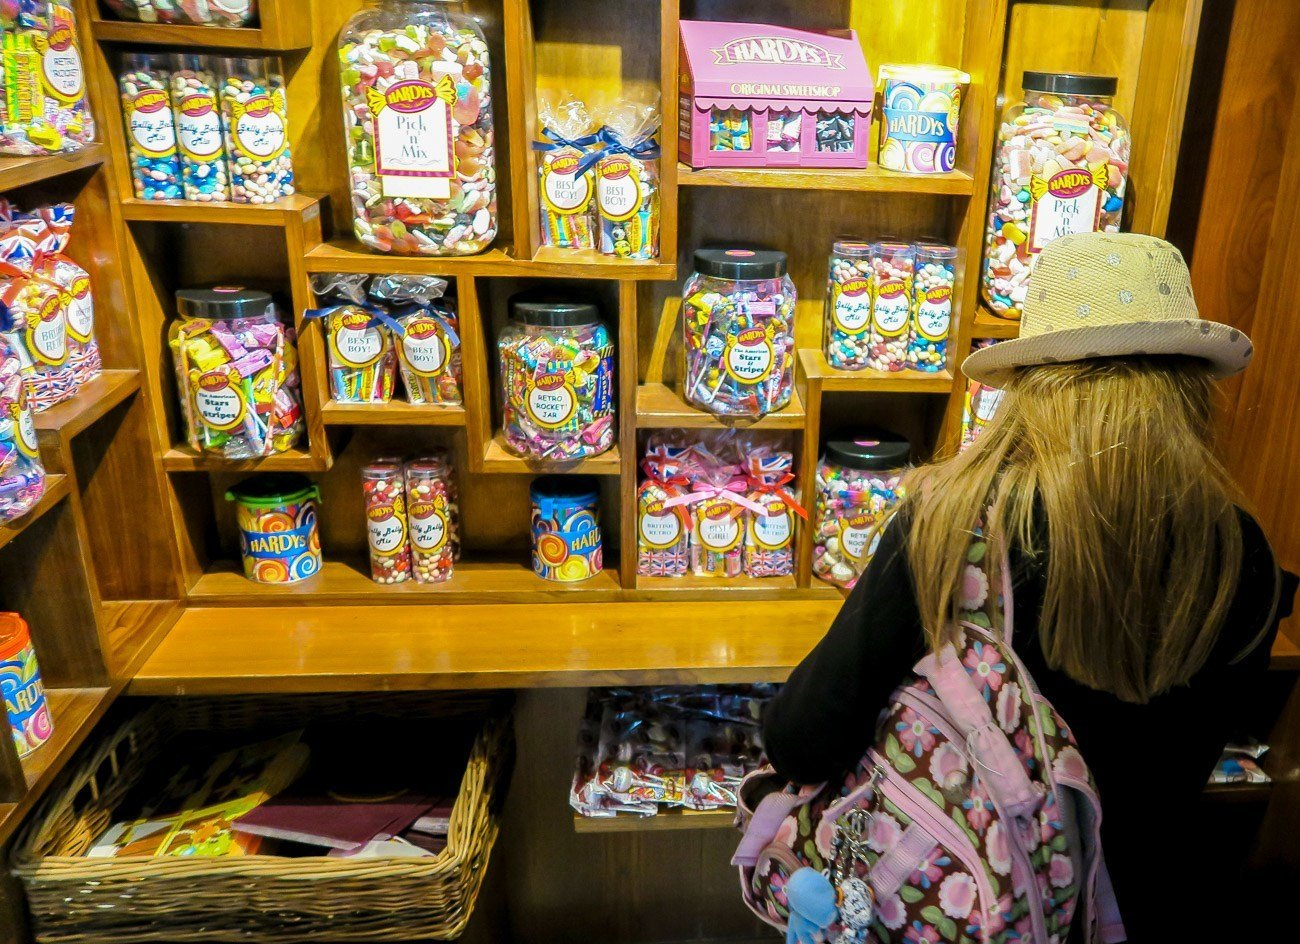 The Hardys pop-up candy shop at Four Seasons Hotel London at Canary Wharf is fun for all ages!